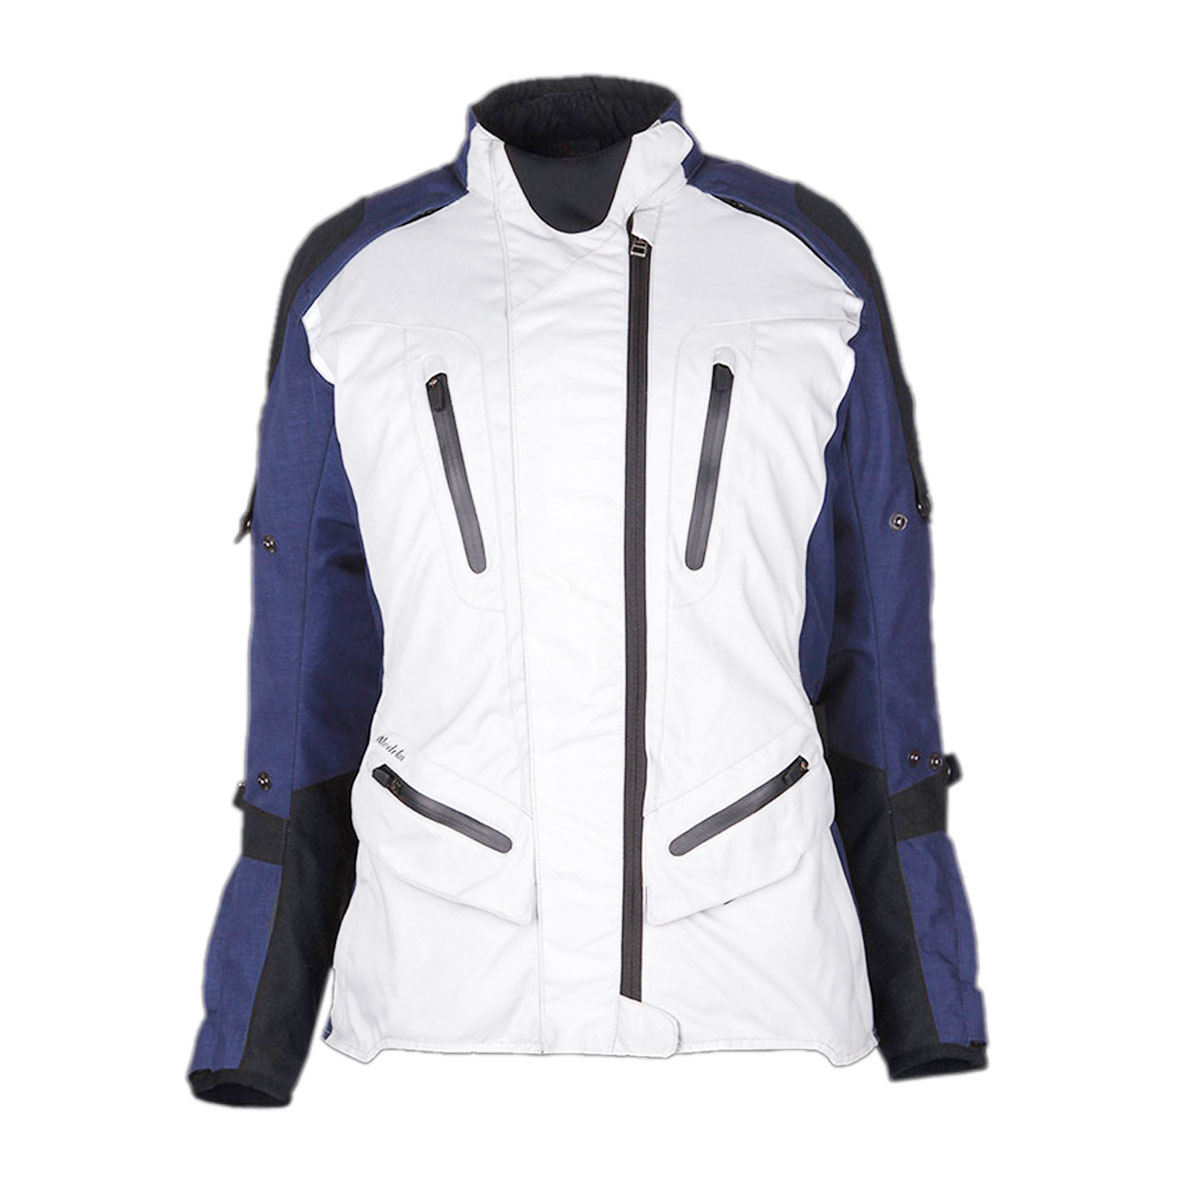 WHITE & BLUE FEMALE CORDURA JACKET